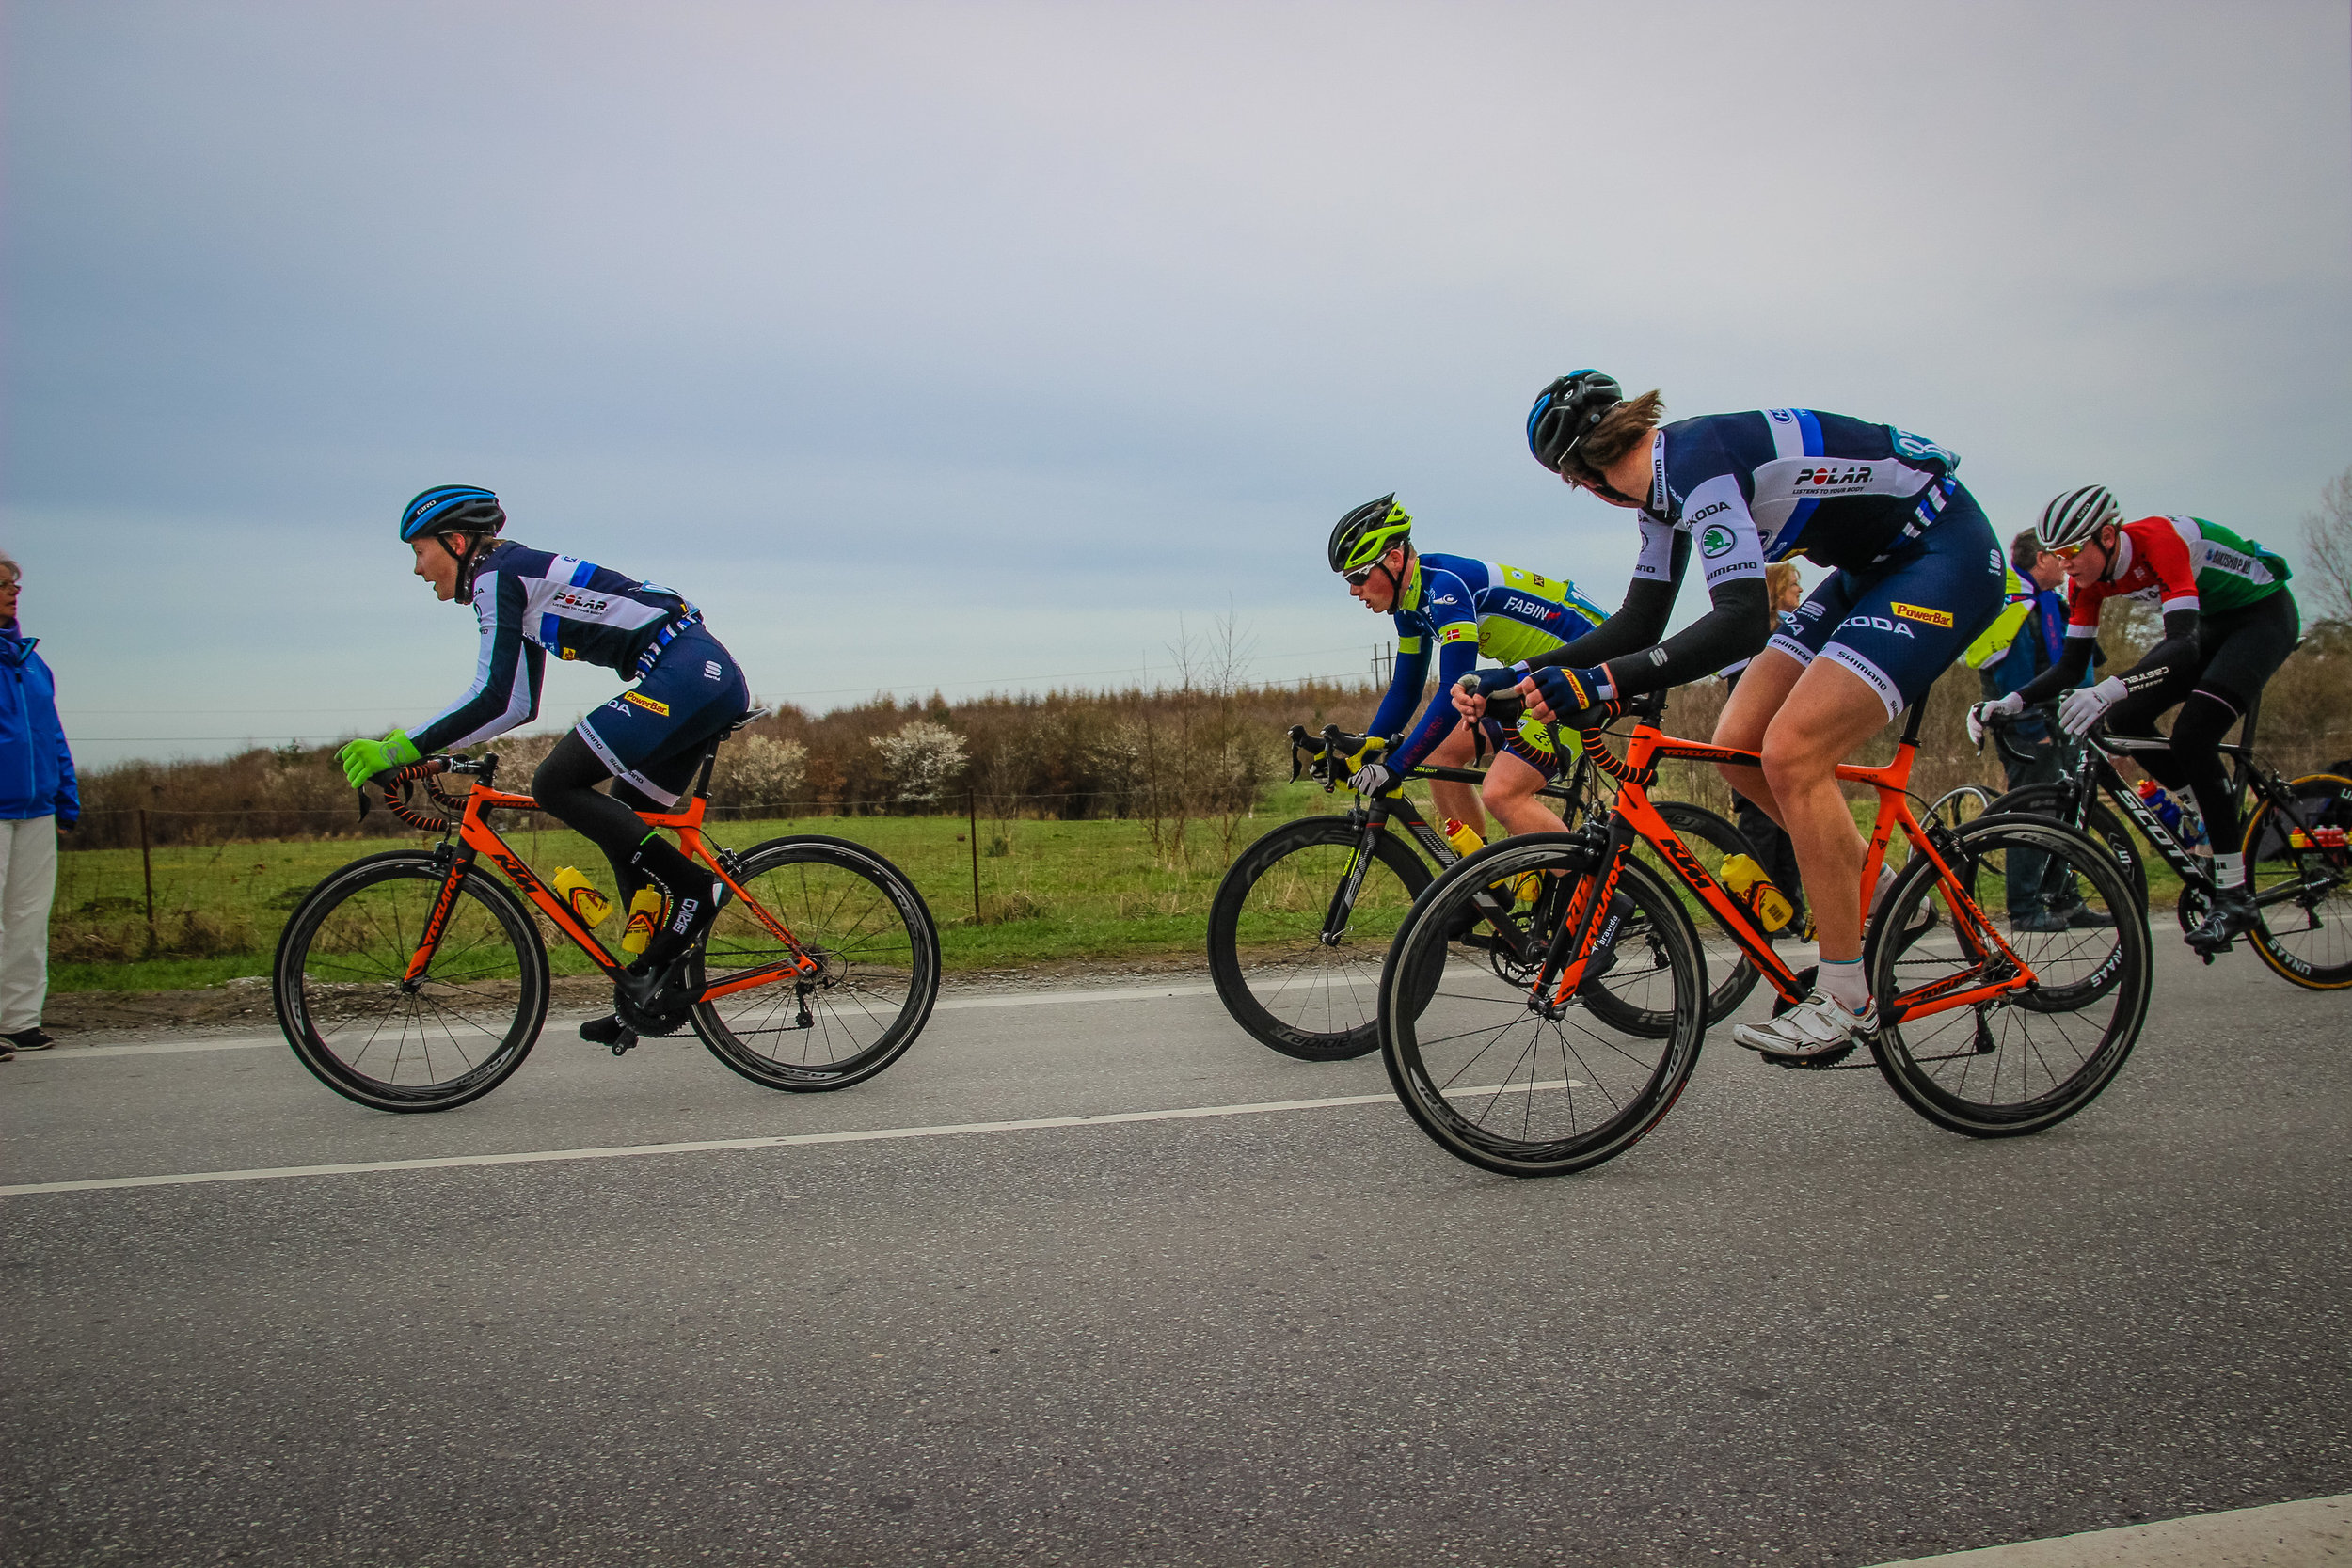 Skoda Fincycling controlling the race early on